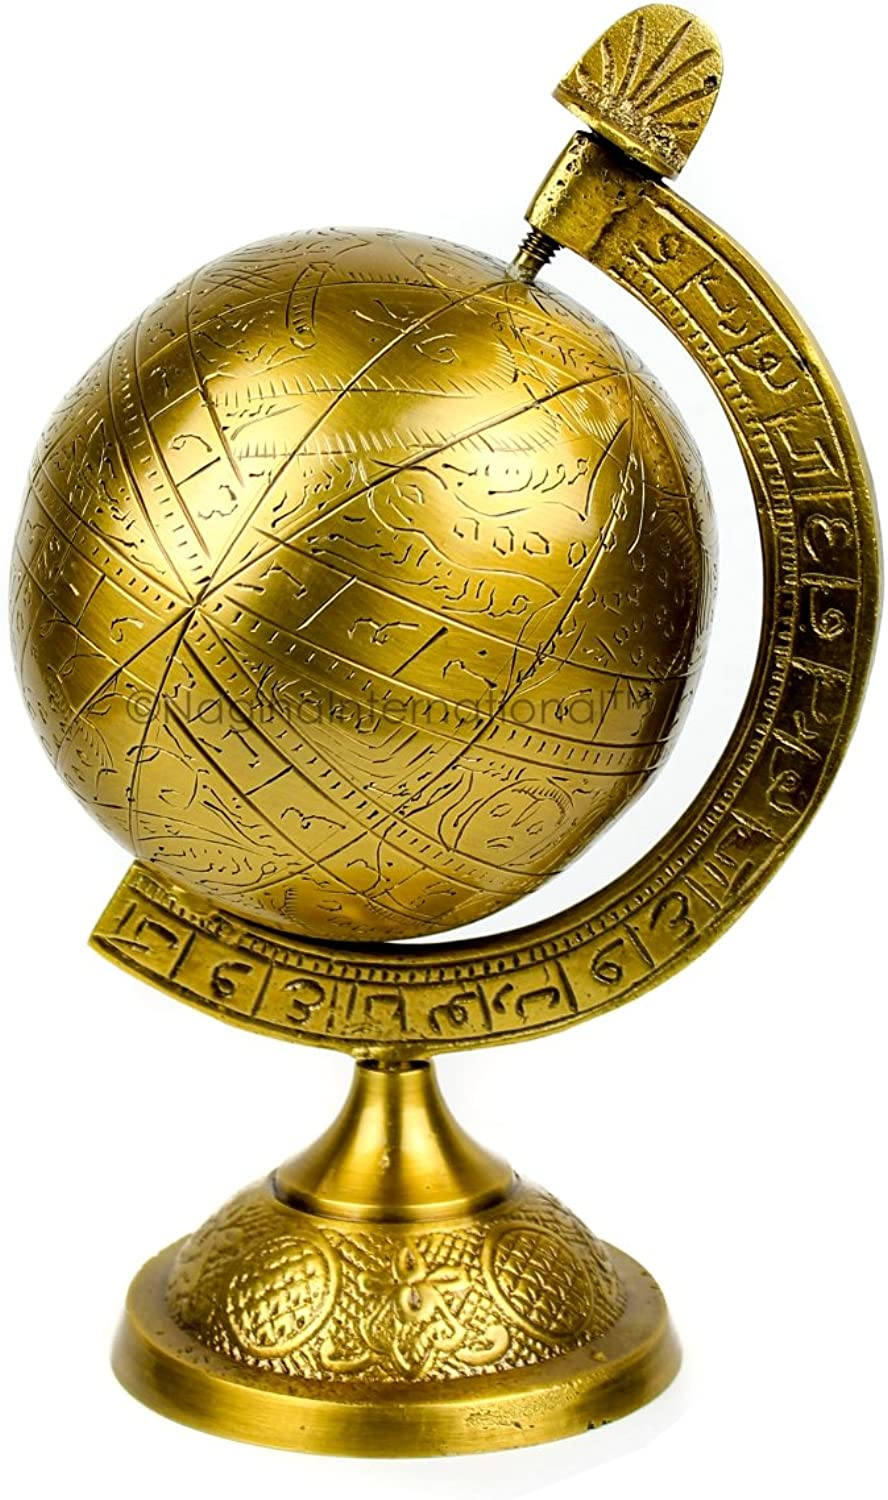 Nagina International Decorative Hanging & Standing Solid Antique Brushed Brass Armillary Sphere   Nautical Antique Globes   Vintage Decor Ornaments (Small Standing Sphere)